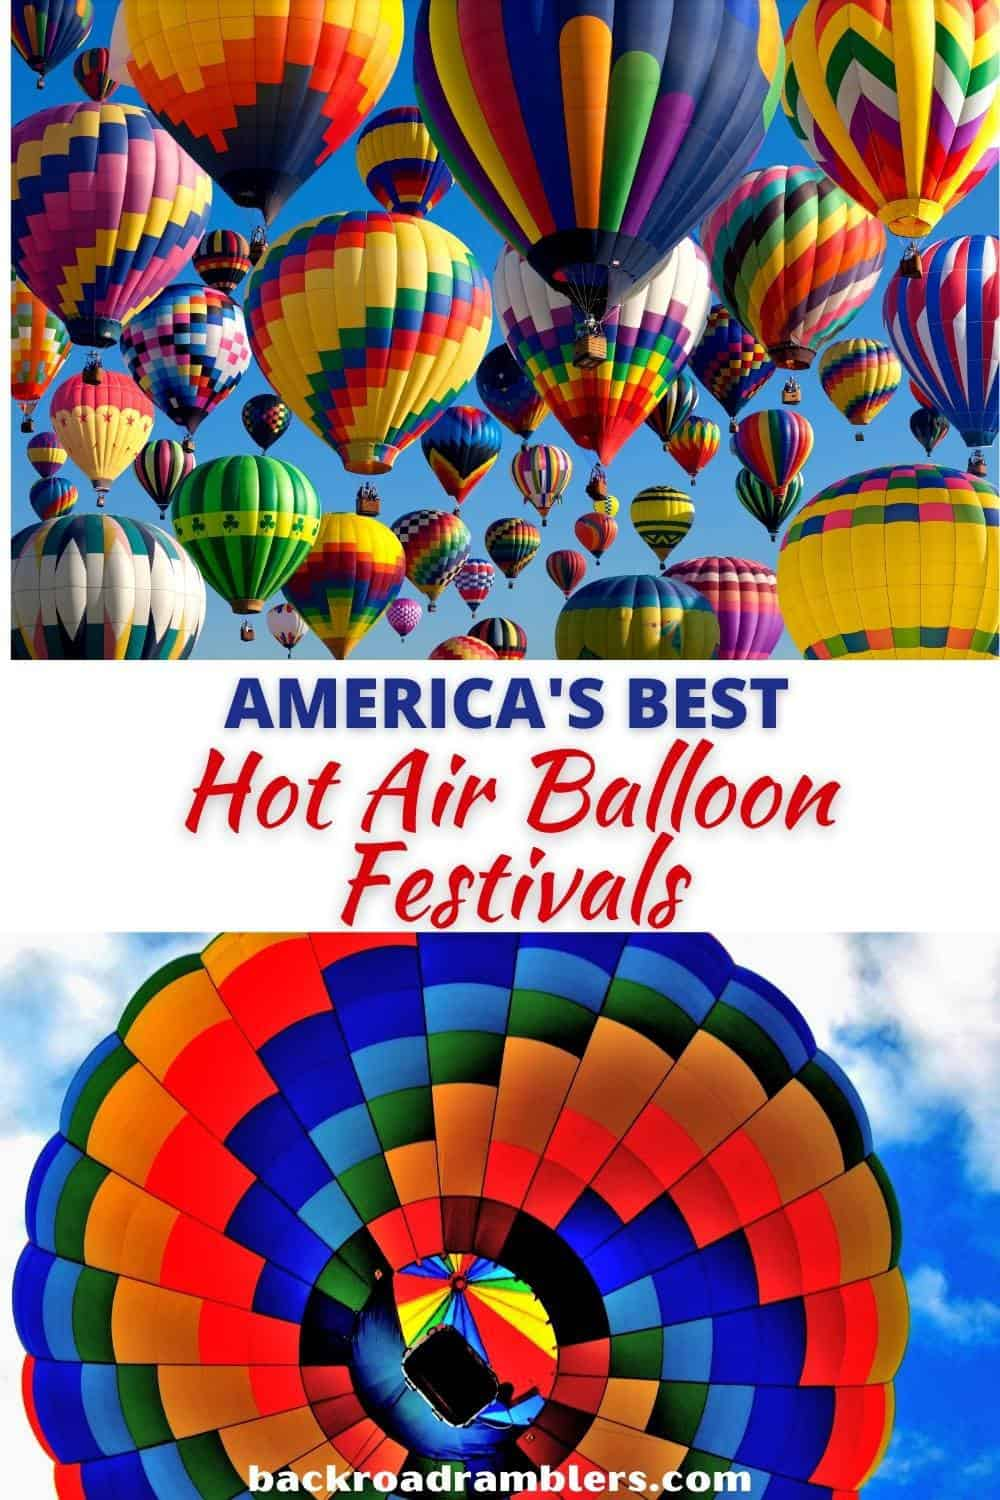 Two photos featuring hot air balloon festivals around the USA. Text overlay: America's Best Hot Air Balloon Festivals